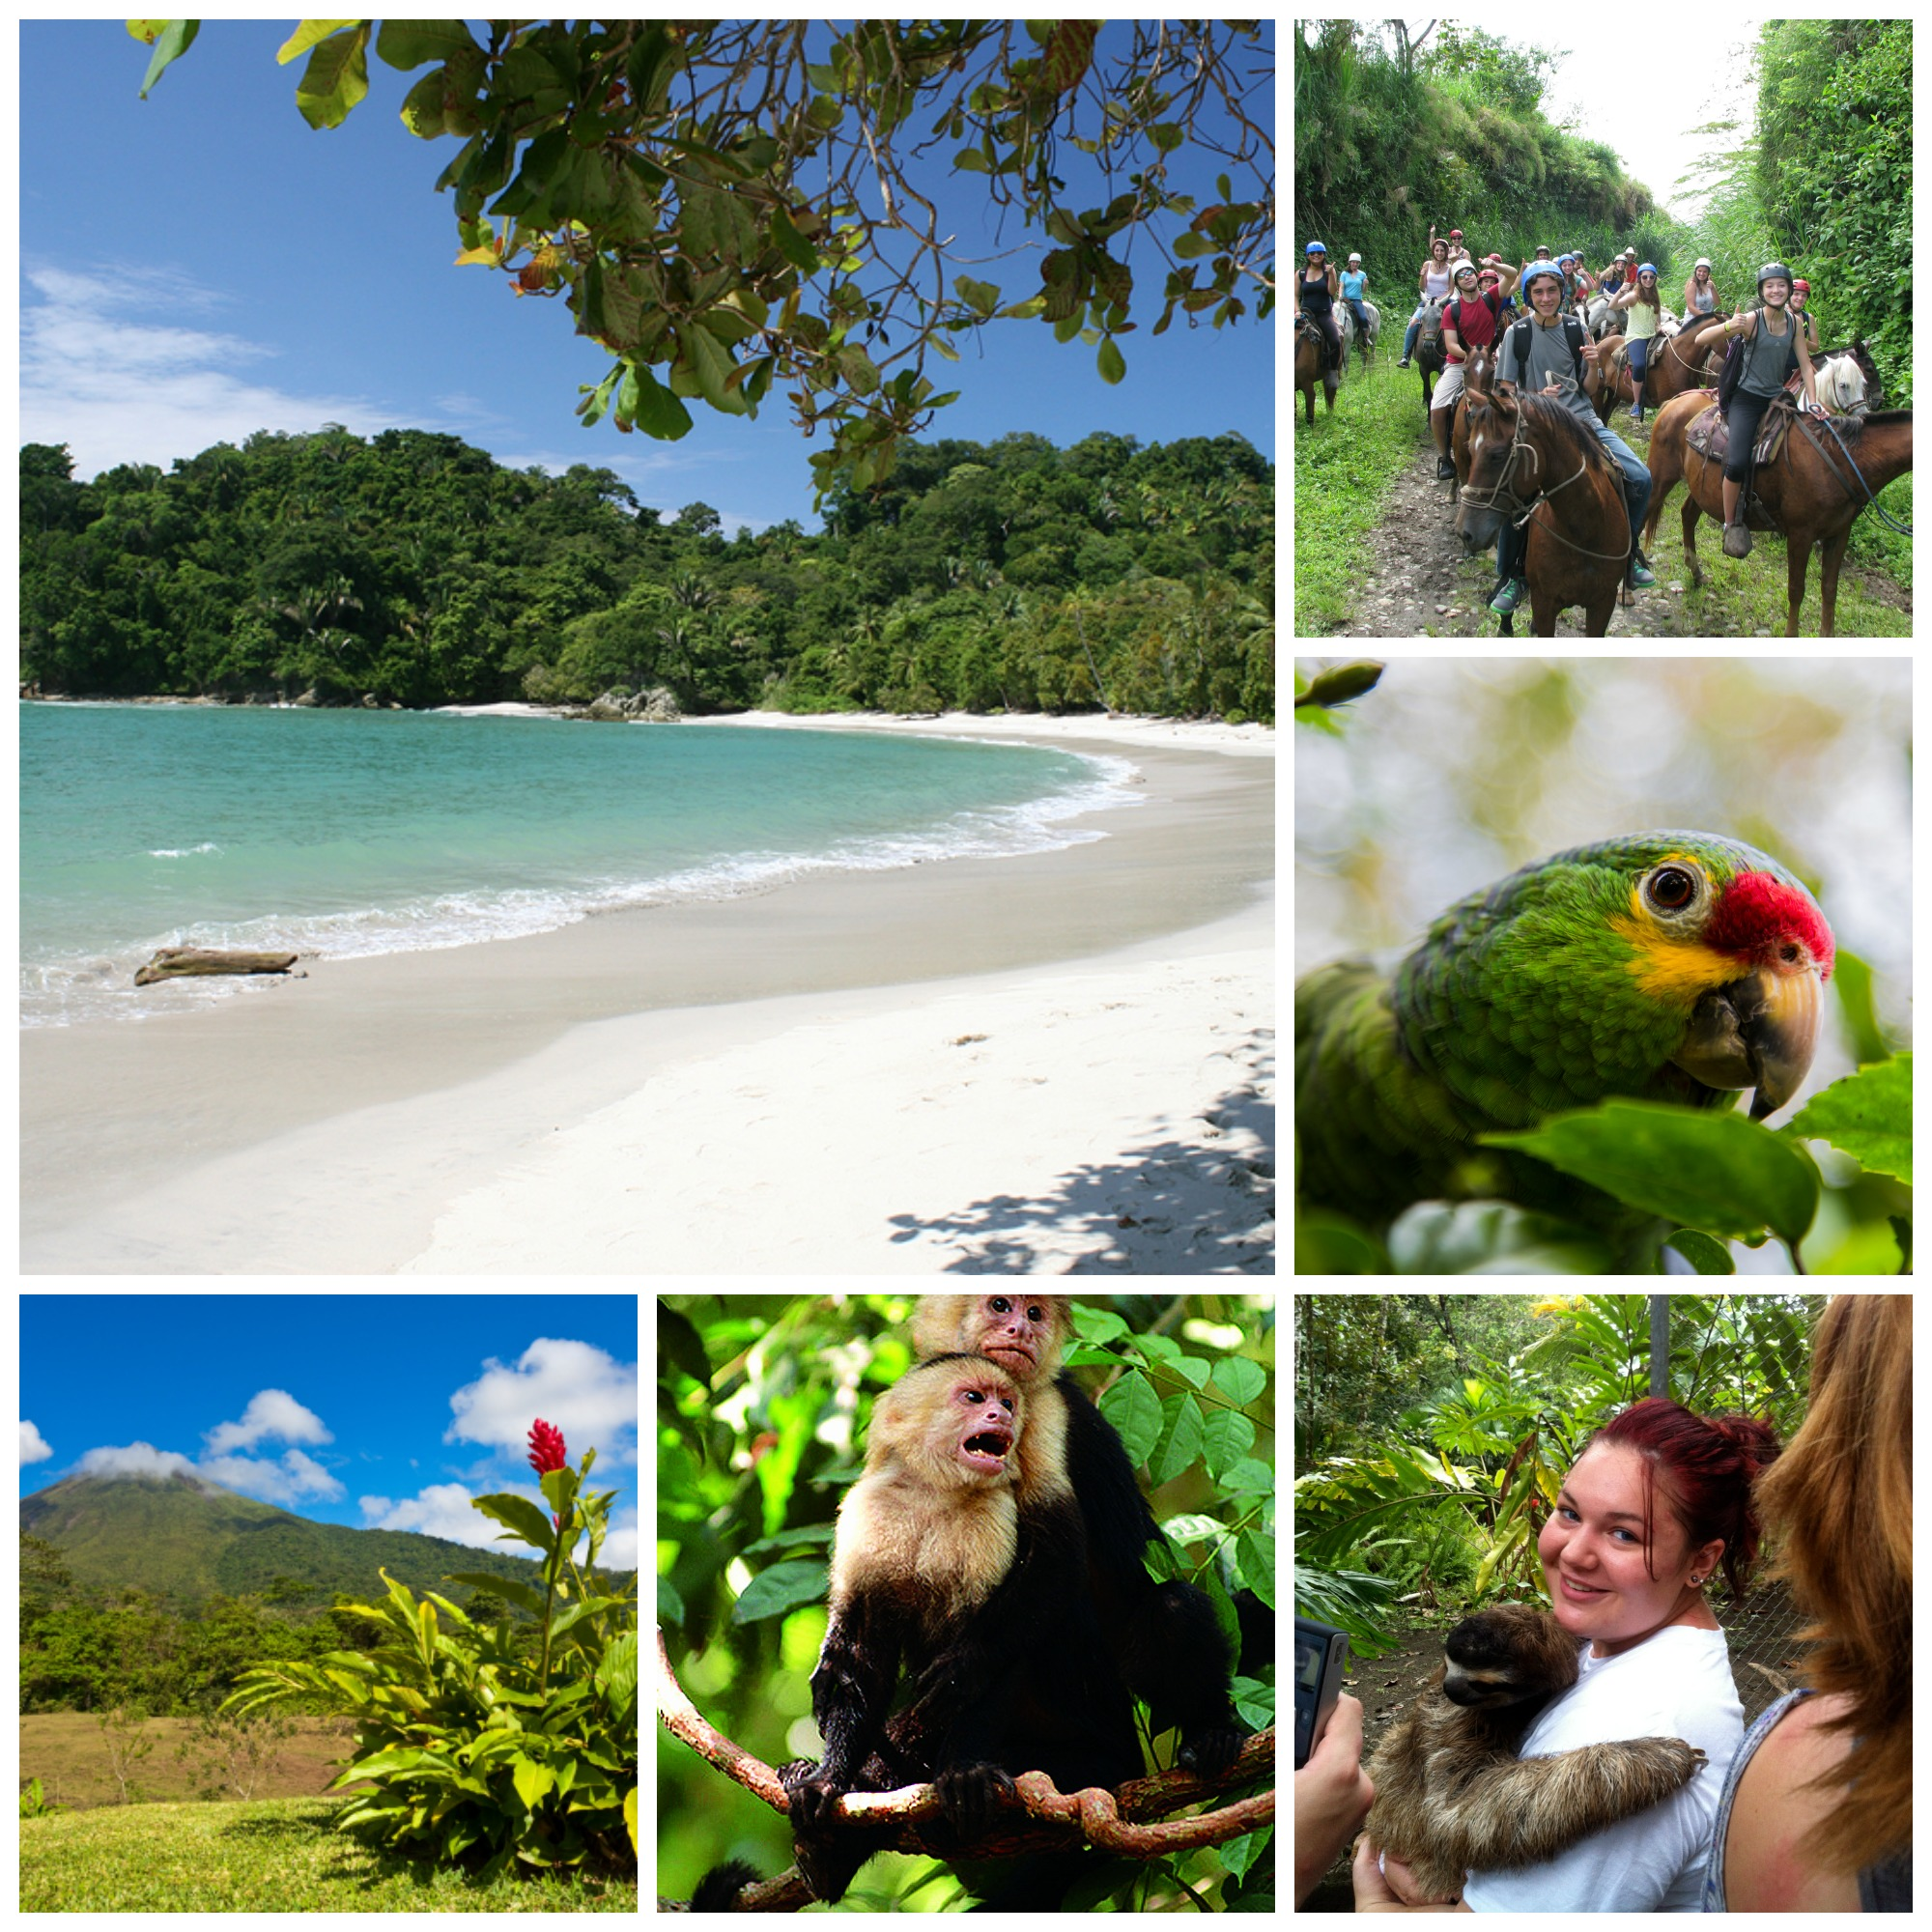 Left, top: Clear blue waters, white sand, and lush trees at Jaco Beach | Left, bottom: Arenal Volcano on a clear day with blue skies | Left, center: Pair of Capuchin monkeys perched on a vine in a rainforest | Right, top: Encore group horseback riding through rainforest, giving thumbs-ups and smiles to the camera | Right, middle: Close-up of Red-lored Amazon parrot's face | Right, bottom: Student holding a three-toed sloth at a reserve in the rainforest